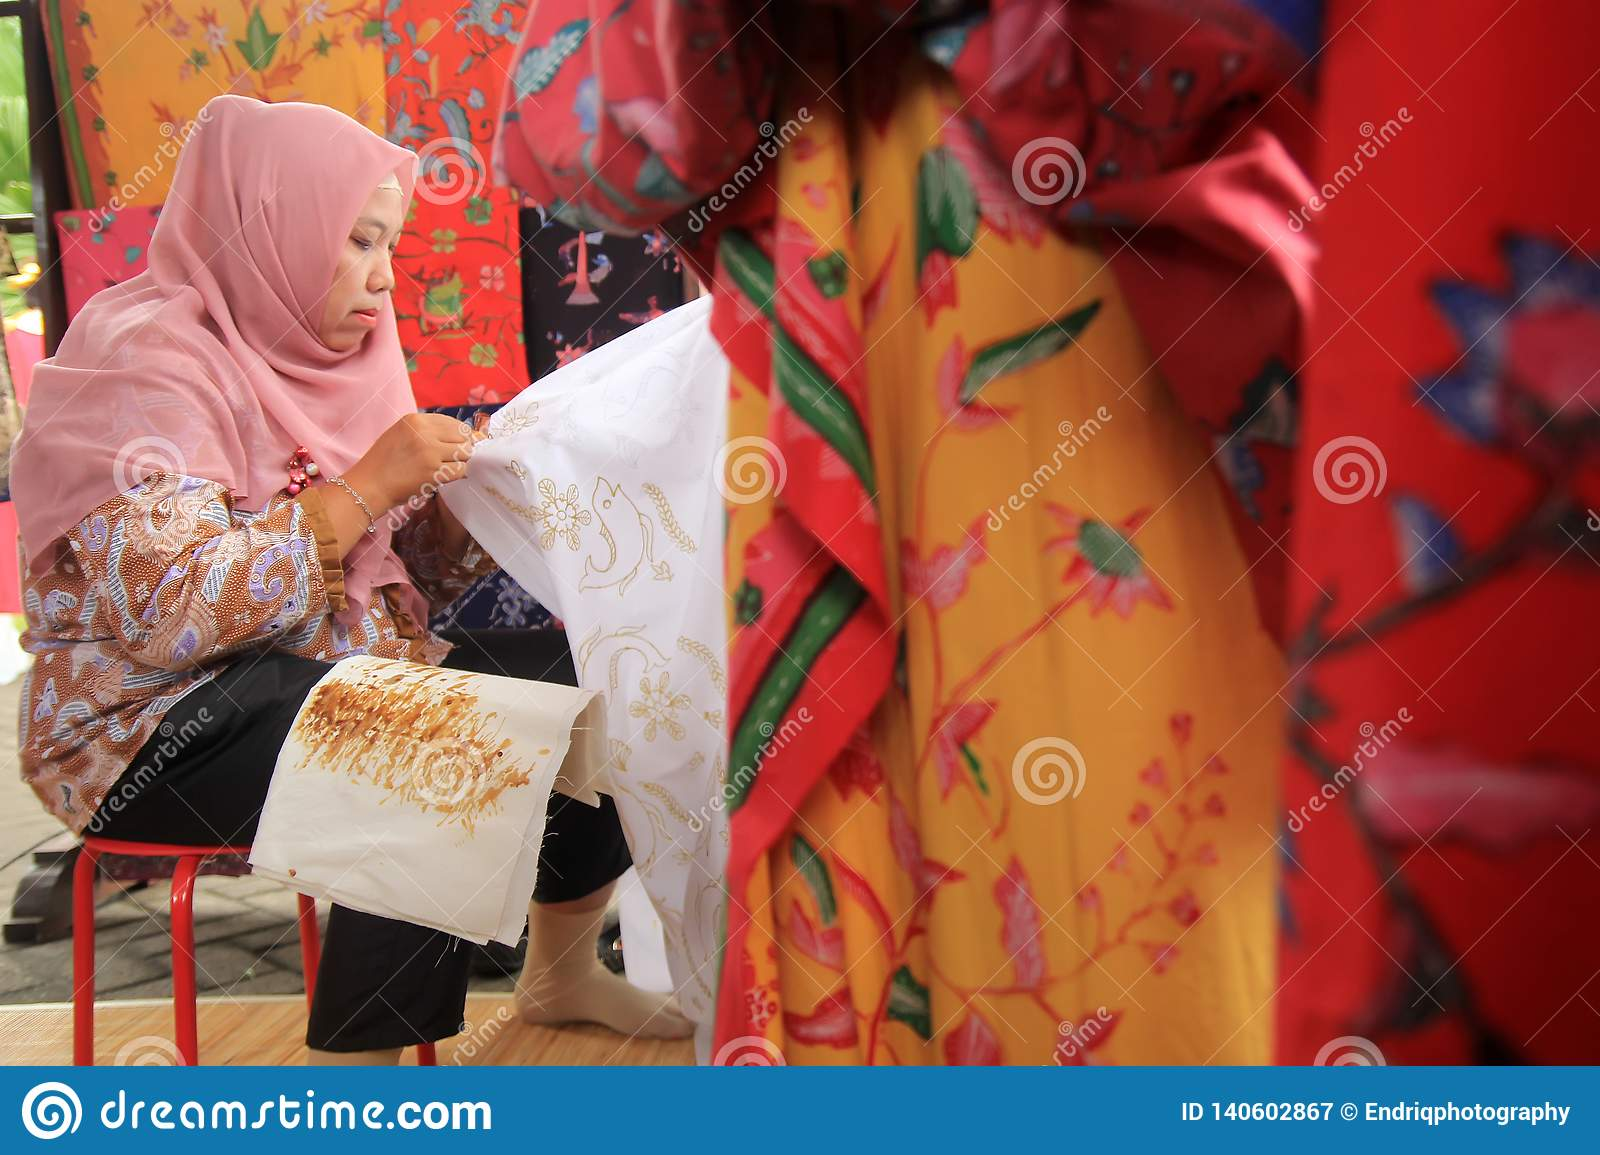 Surabaya indonesia. August 20, 2015. A woman makes a batik motif using canting